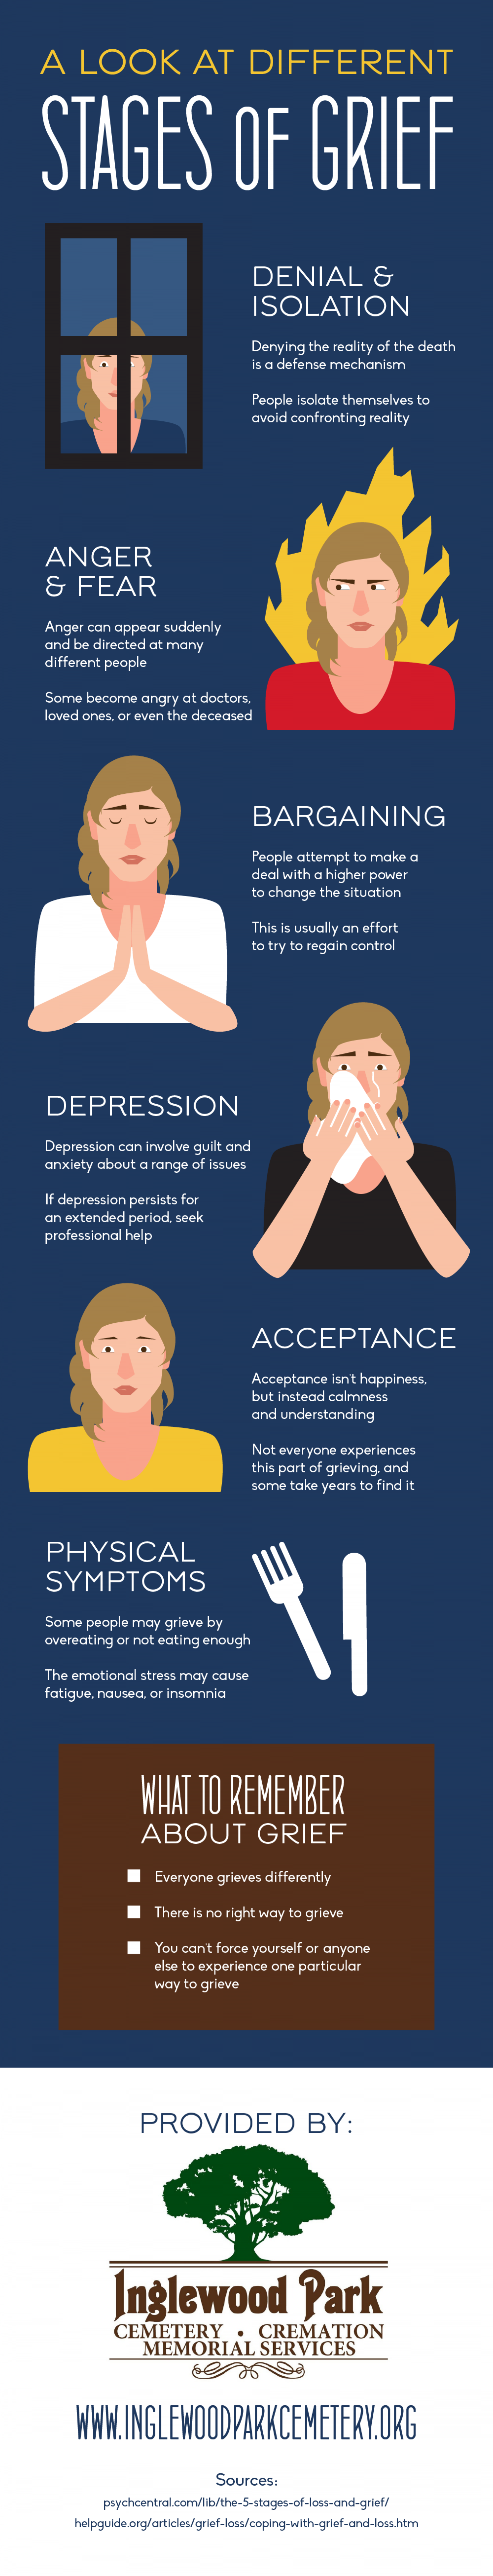 A Look at Different Stages of Grief Infographic